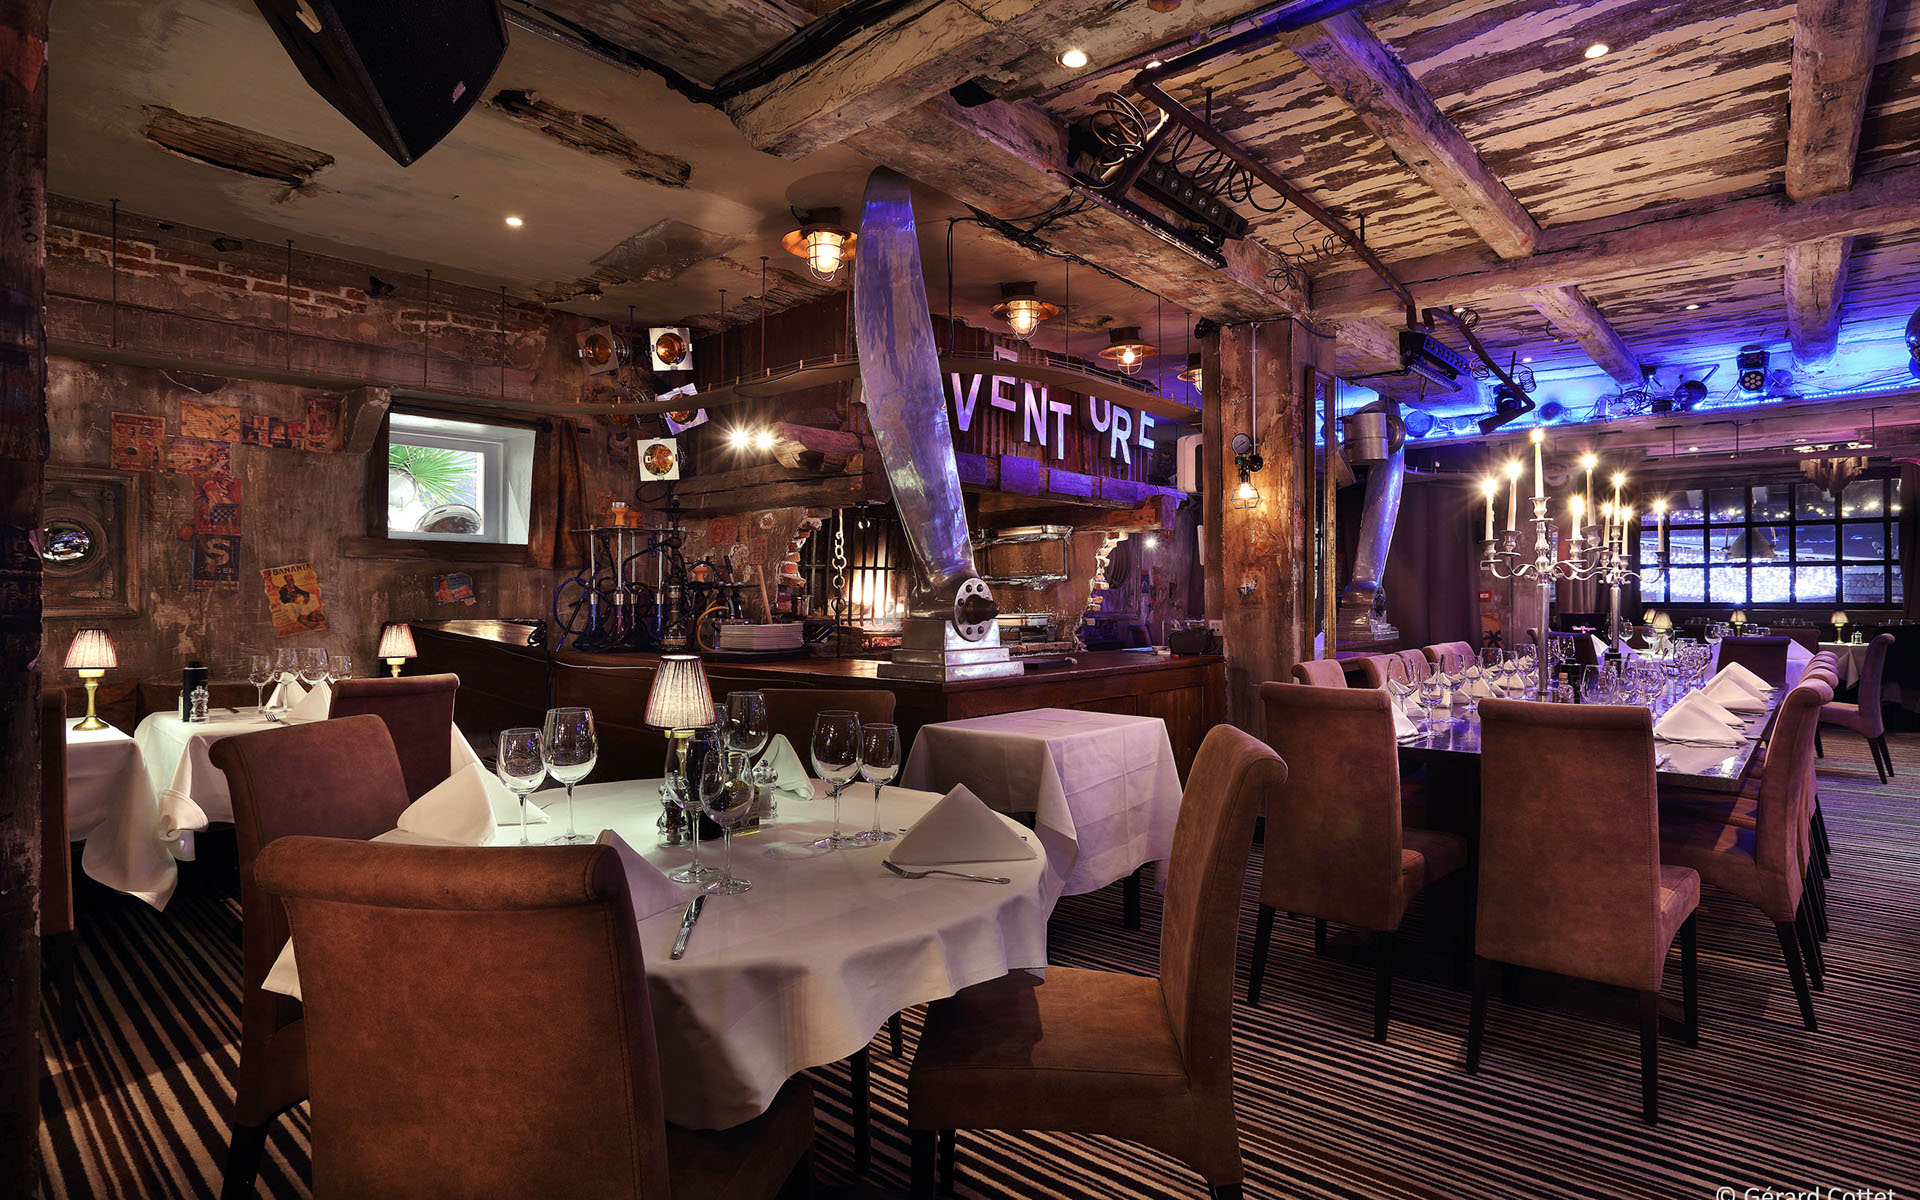 302/Site Maison Tournier/Restaurant/aventure/aventure_courchevel_6.jpg